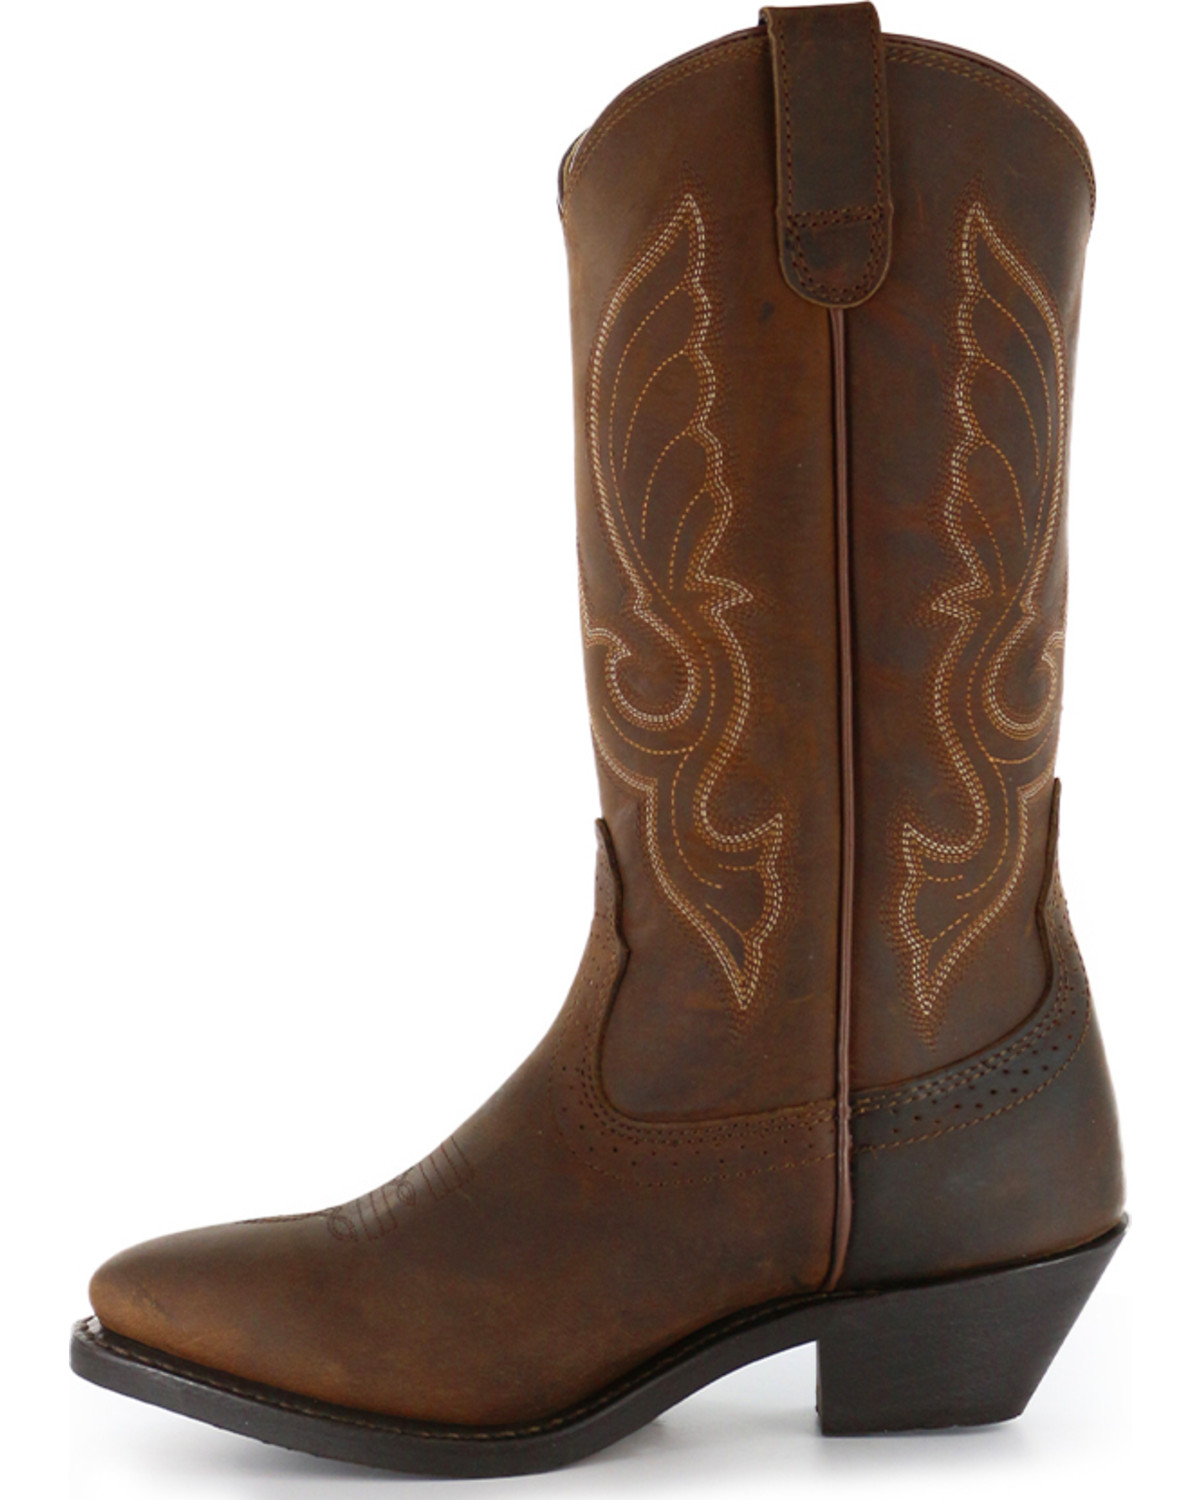 Shyanne Cowboy Boots from the Boot Barn Hello & hi!!! Today I wanted to share my new Shyanne boots from The Boot Barn & also dig a little deeper to give you my thoughts on these boots .